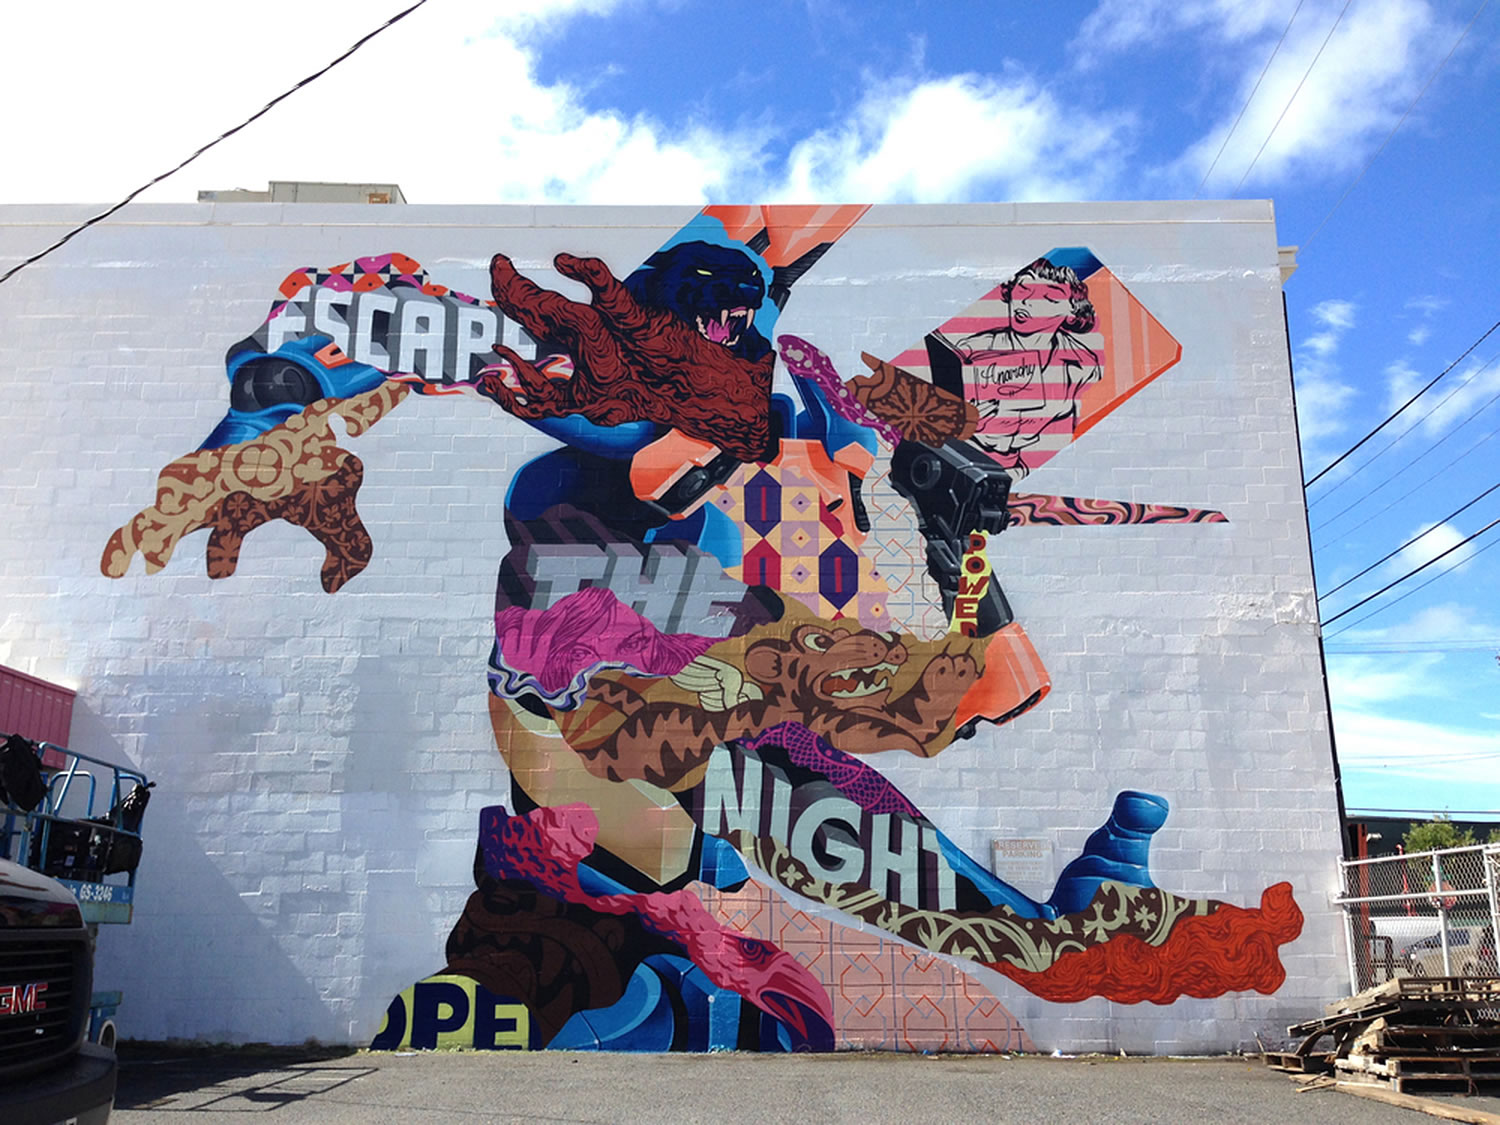 cartoon, comic style mural by Tristan Eaton